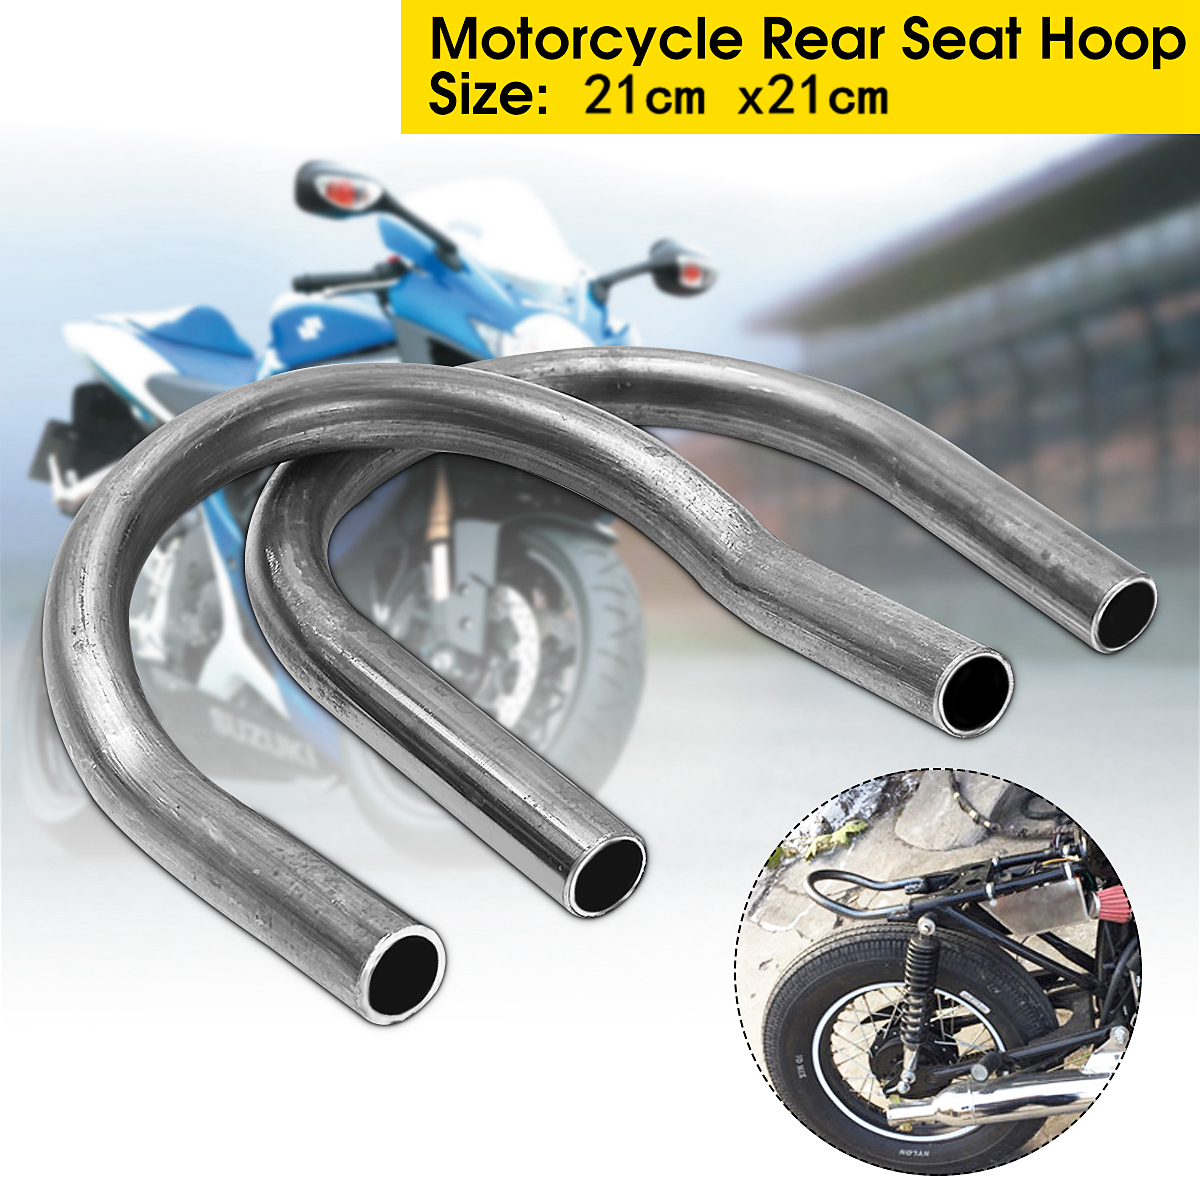 Universal Motorcycle Cafe Racer Frame Retro Rear Flat/Upswept Seat Loop Frames Fittings Hoop for Yamaha for Suzuki for Honda